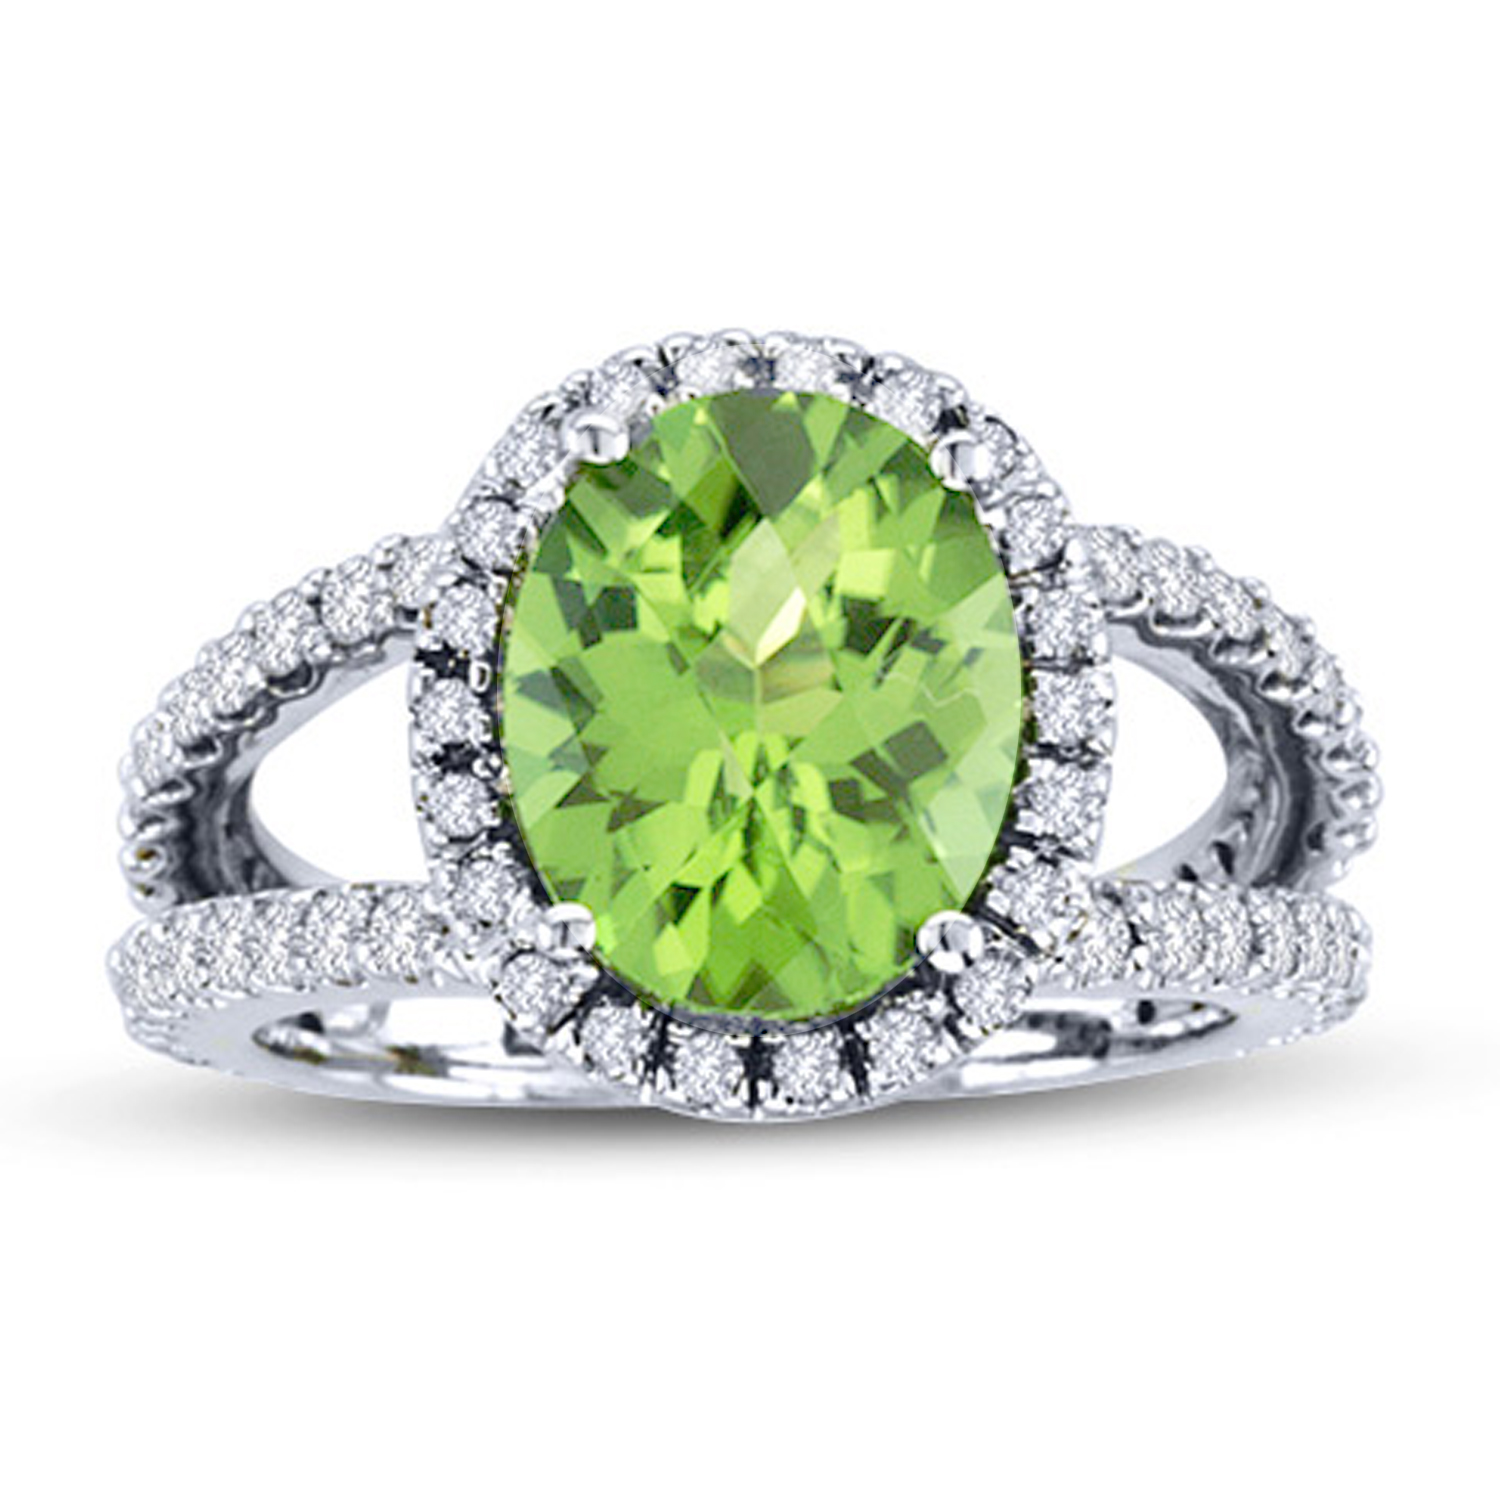 View 14k Gold Split Shank Ring with 0.85ct tw of Round Diamonds and 11x9mm Peridot Oval Shape Center Stone